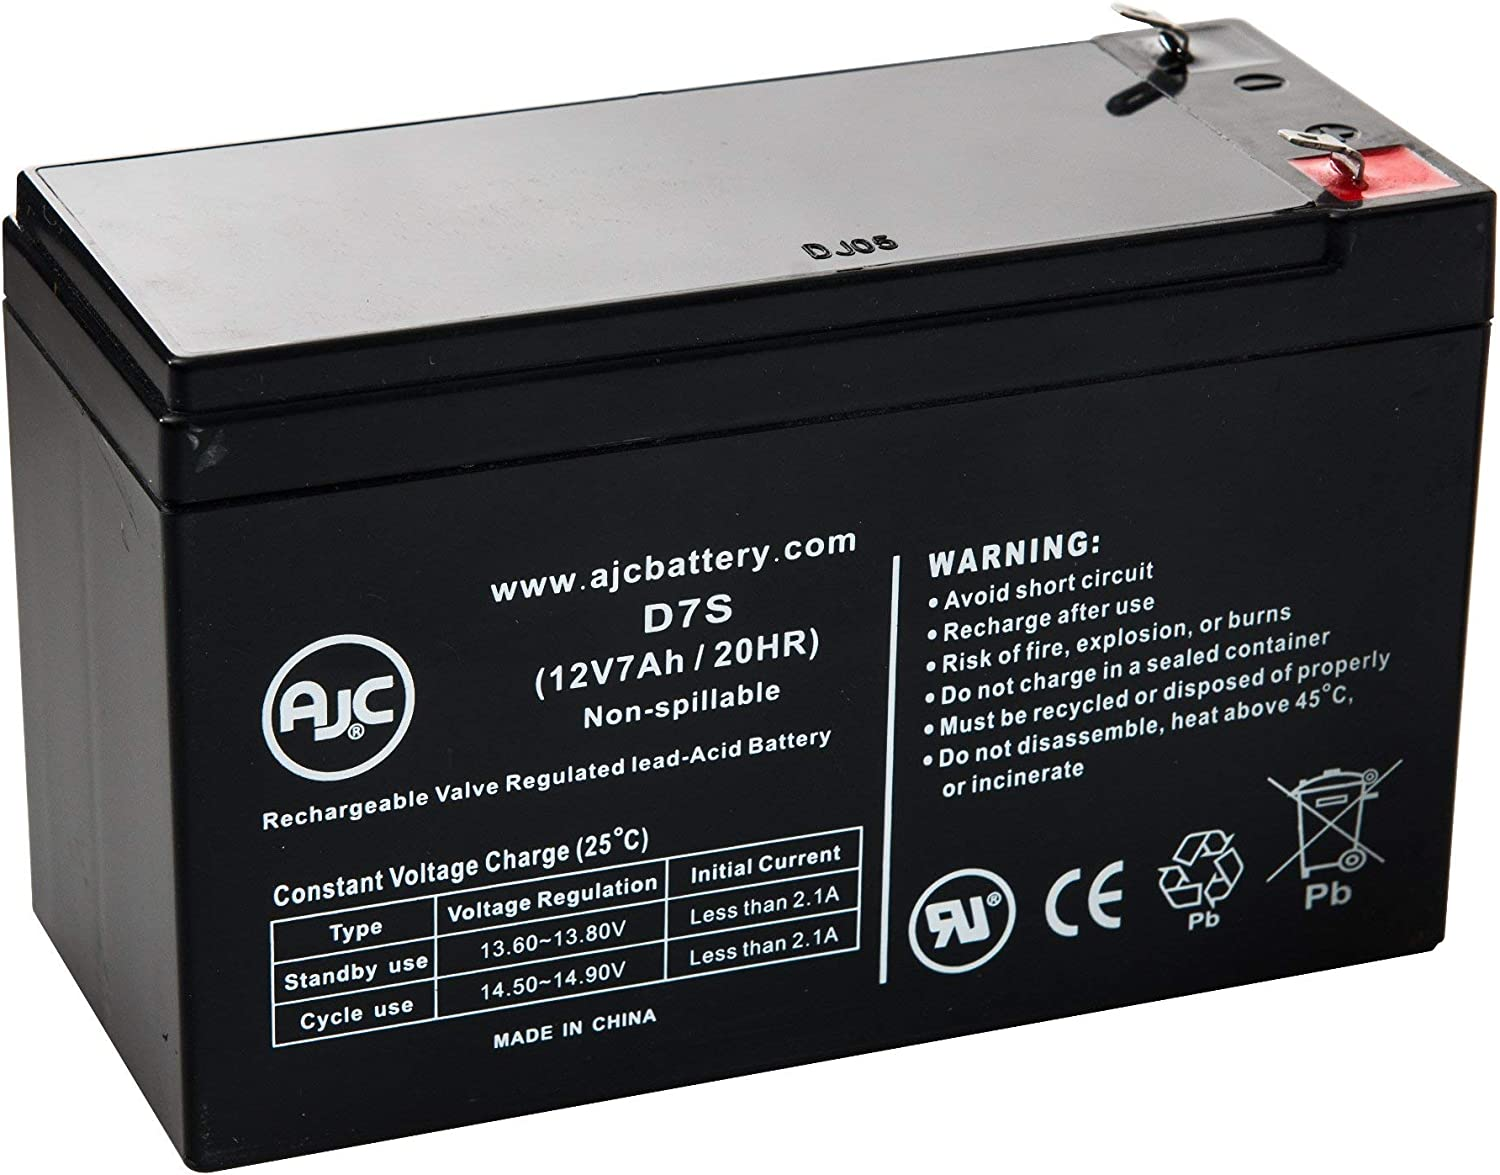 Tripp Lite SU2200RTXL2UA 12V 7Ah UPS Battery This is an AJC Brand Replacement